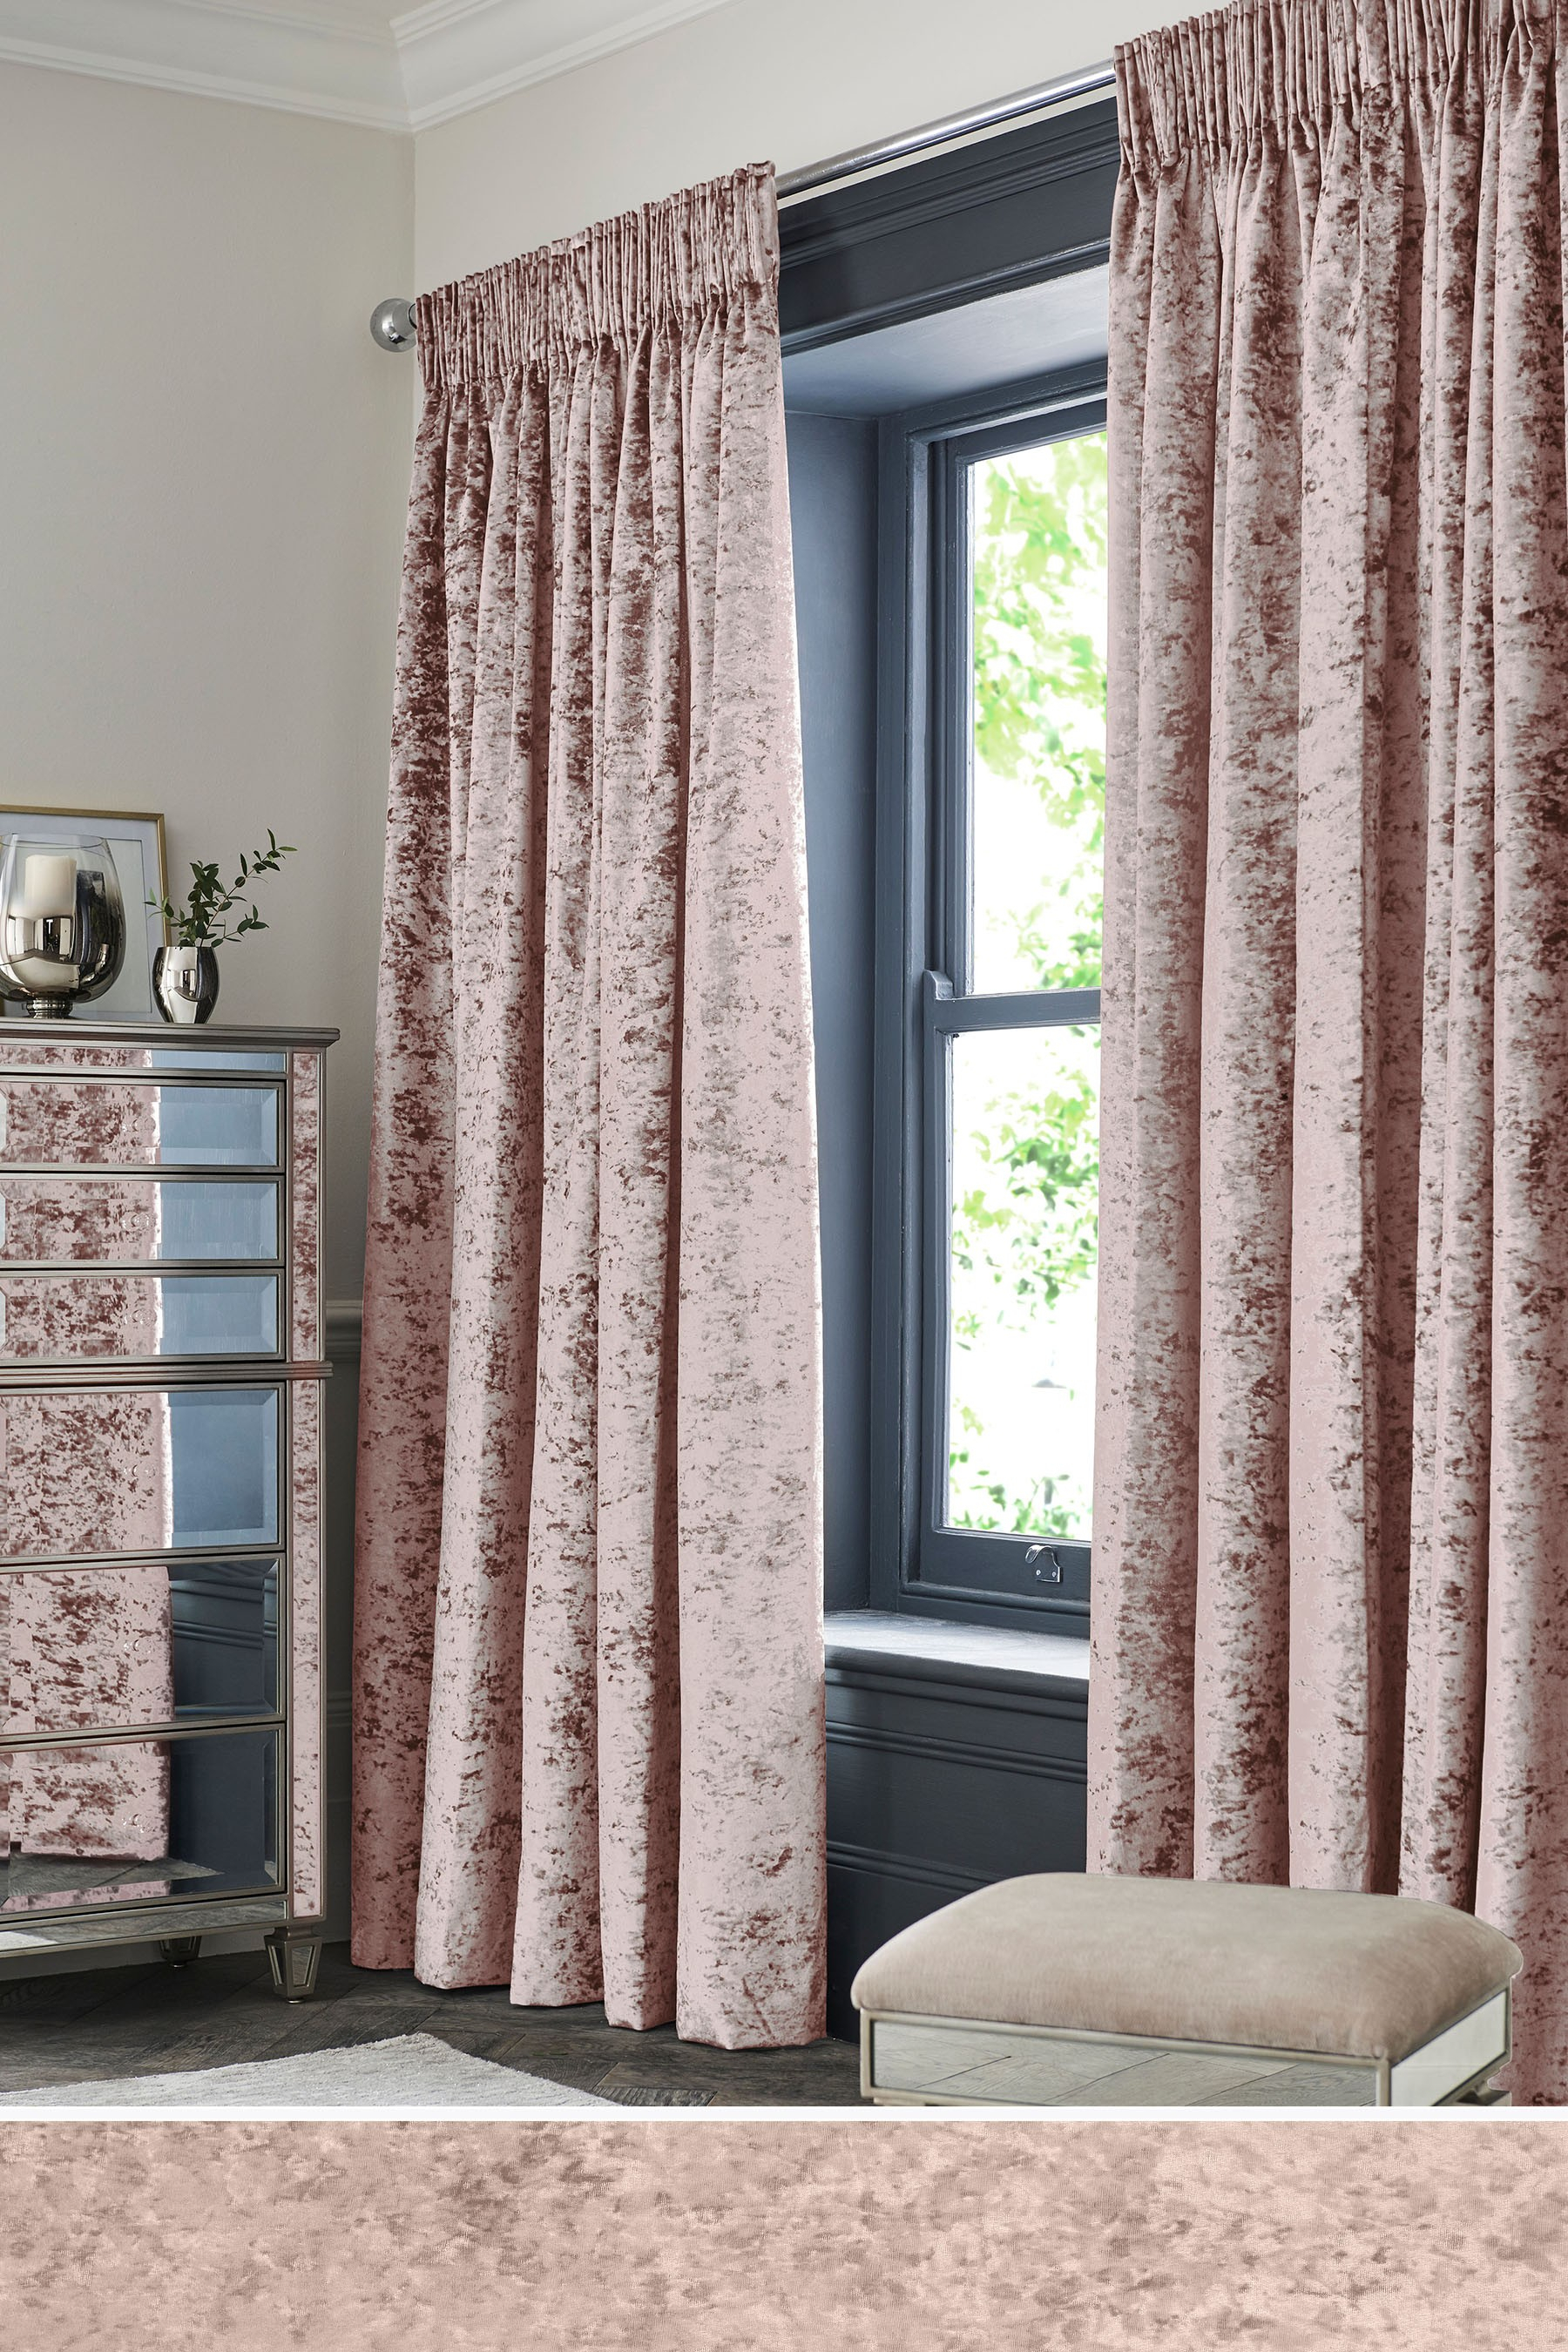 Next Crushed Velvet Pencil Pleat Lined Curtains – Pink In Inside Velvet Dream Silver Curtain Panel Pairs (View 17 of 31)